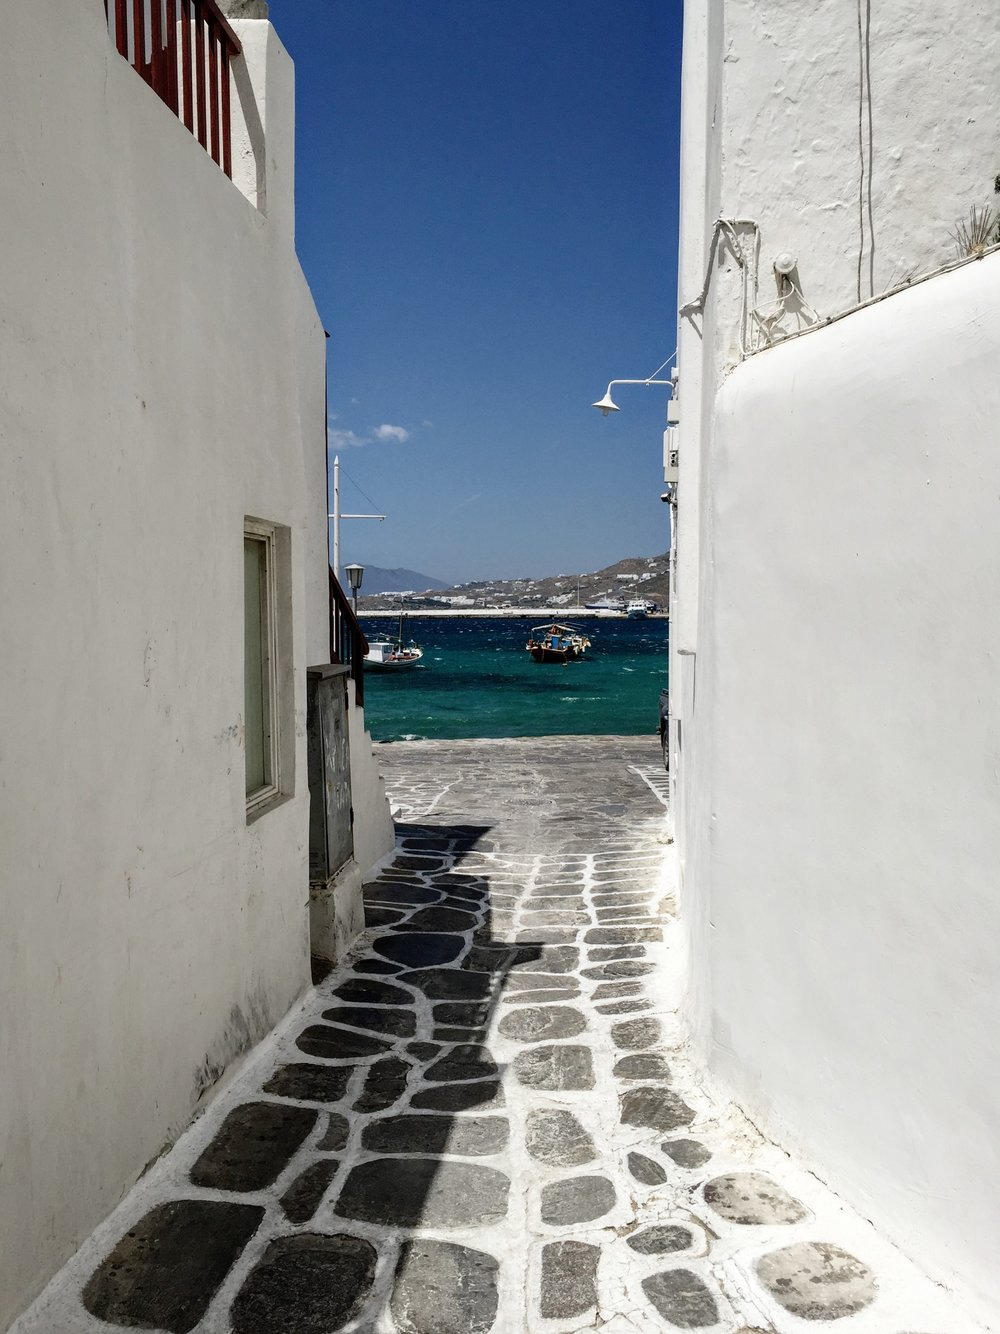 The streets of Mykonos,  tile paved and white washed in their edges